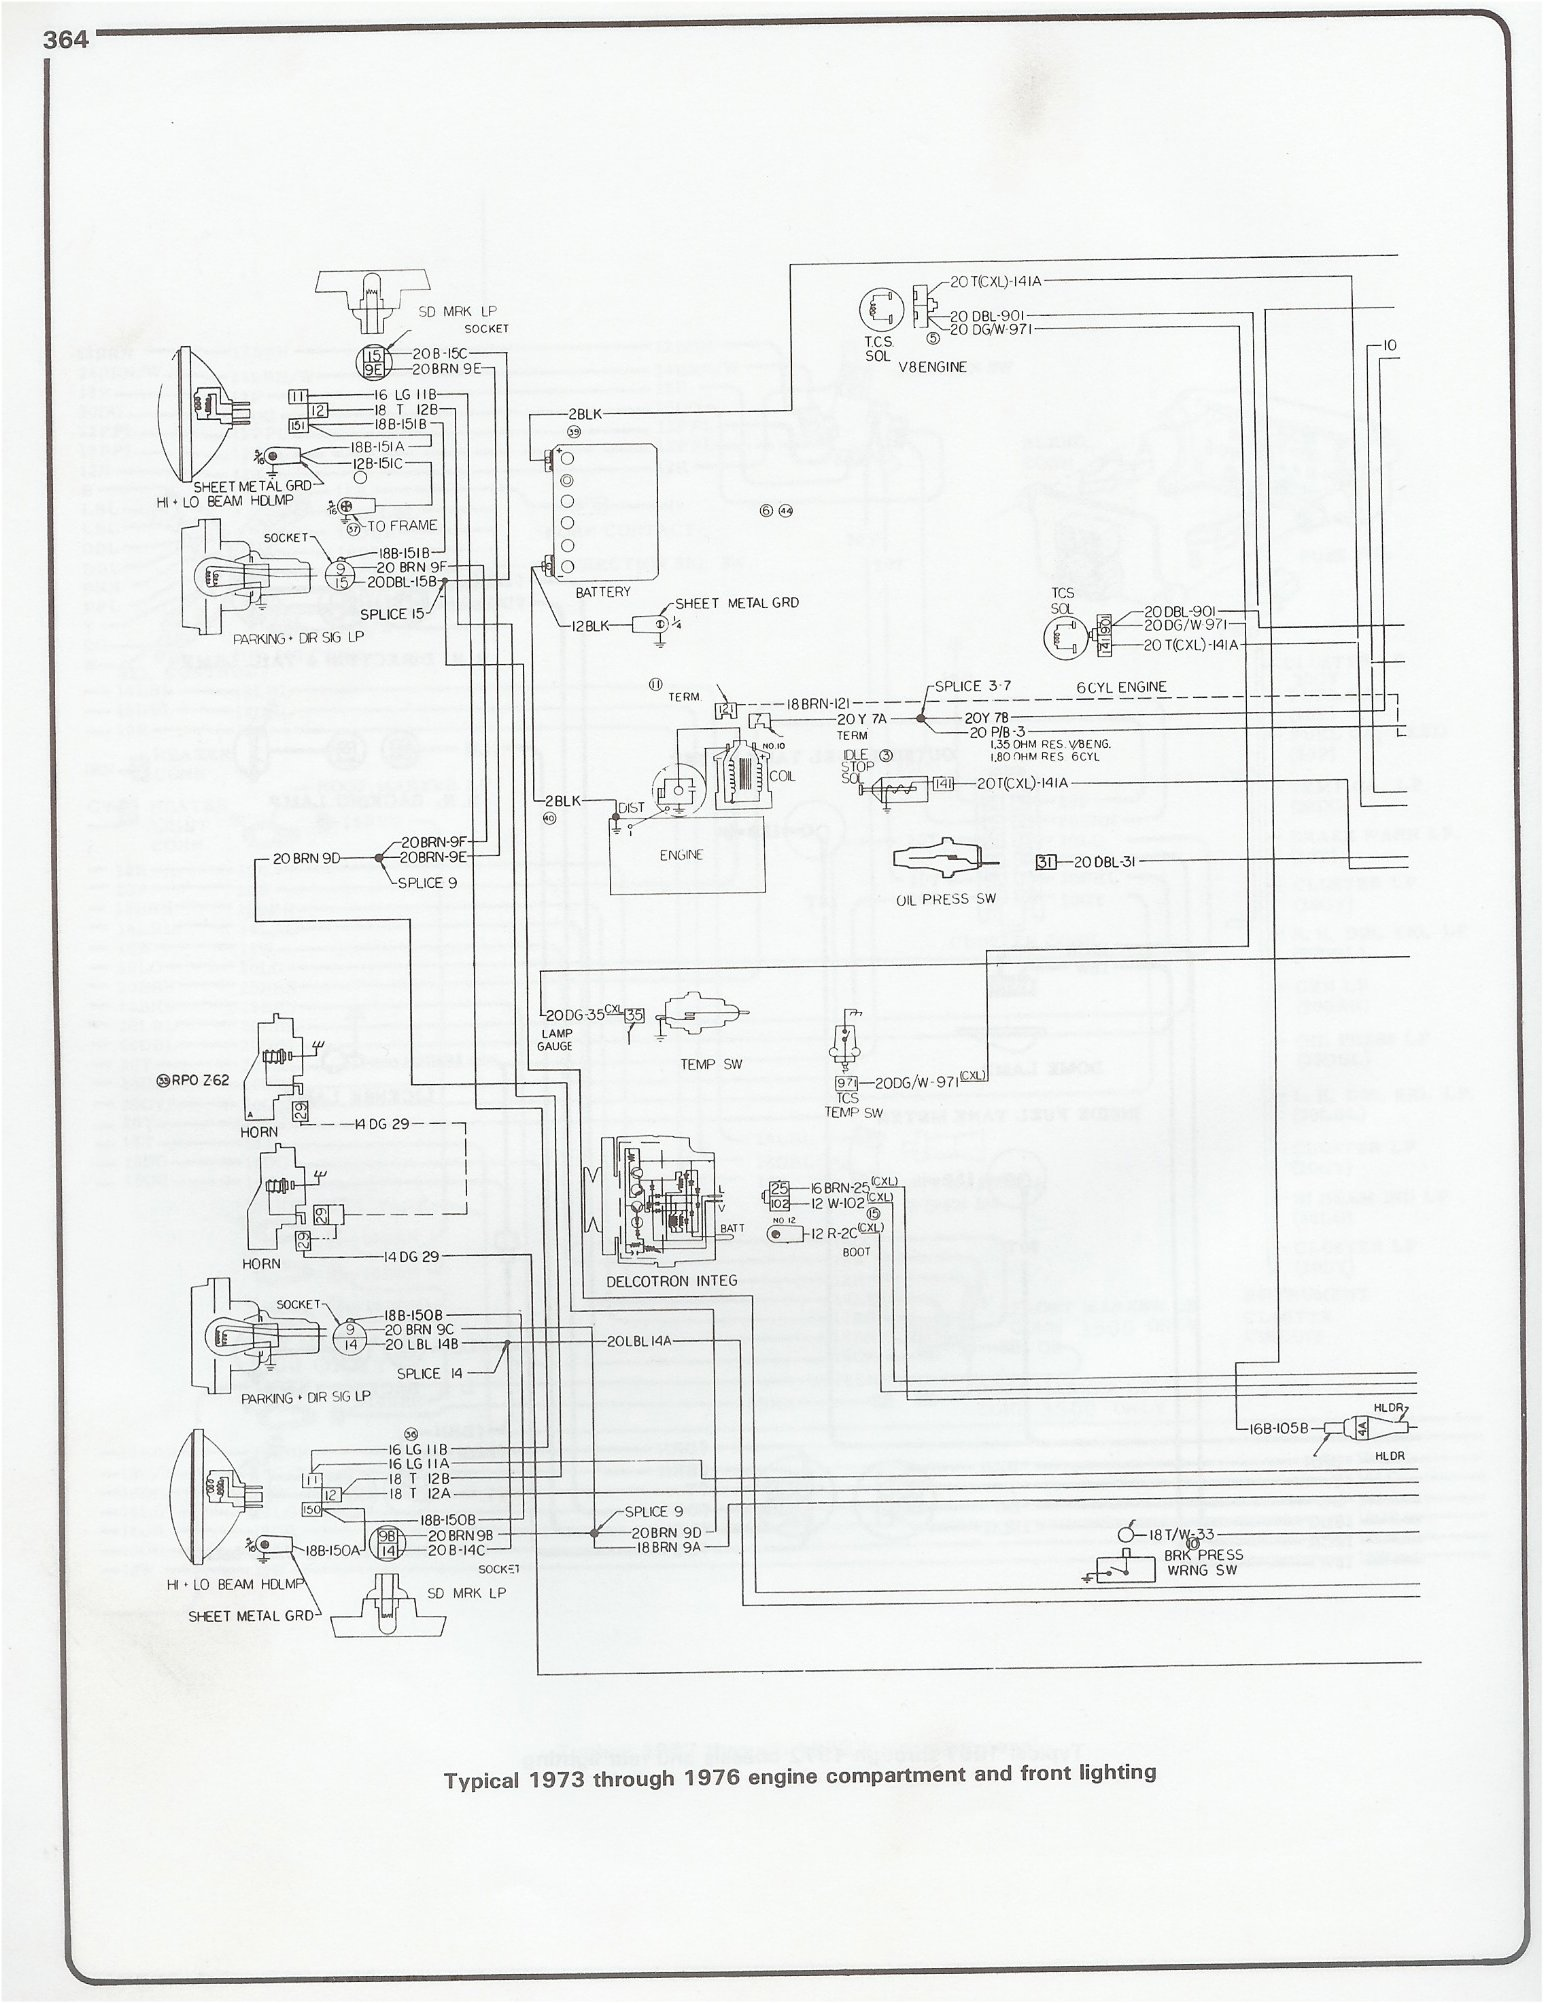 Complete 73 87 Wiring Diagrams Way Lighting Circuit Diagram For Two Lights Moreover Ford F100 76 Engine And Front